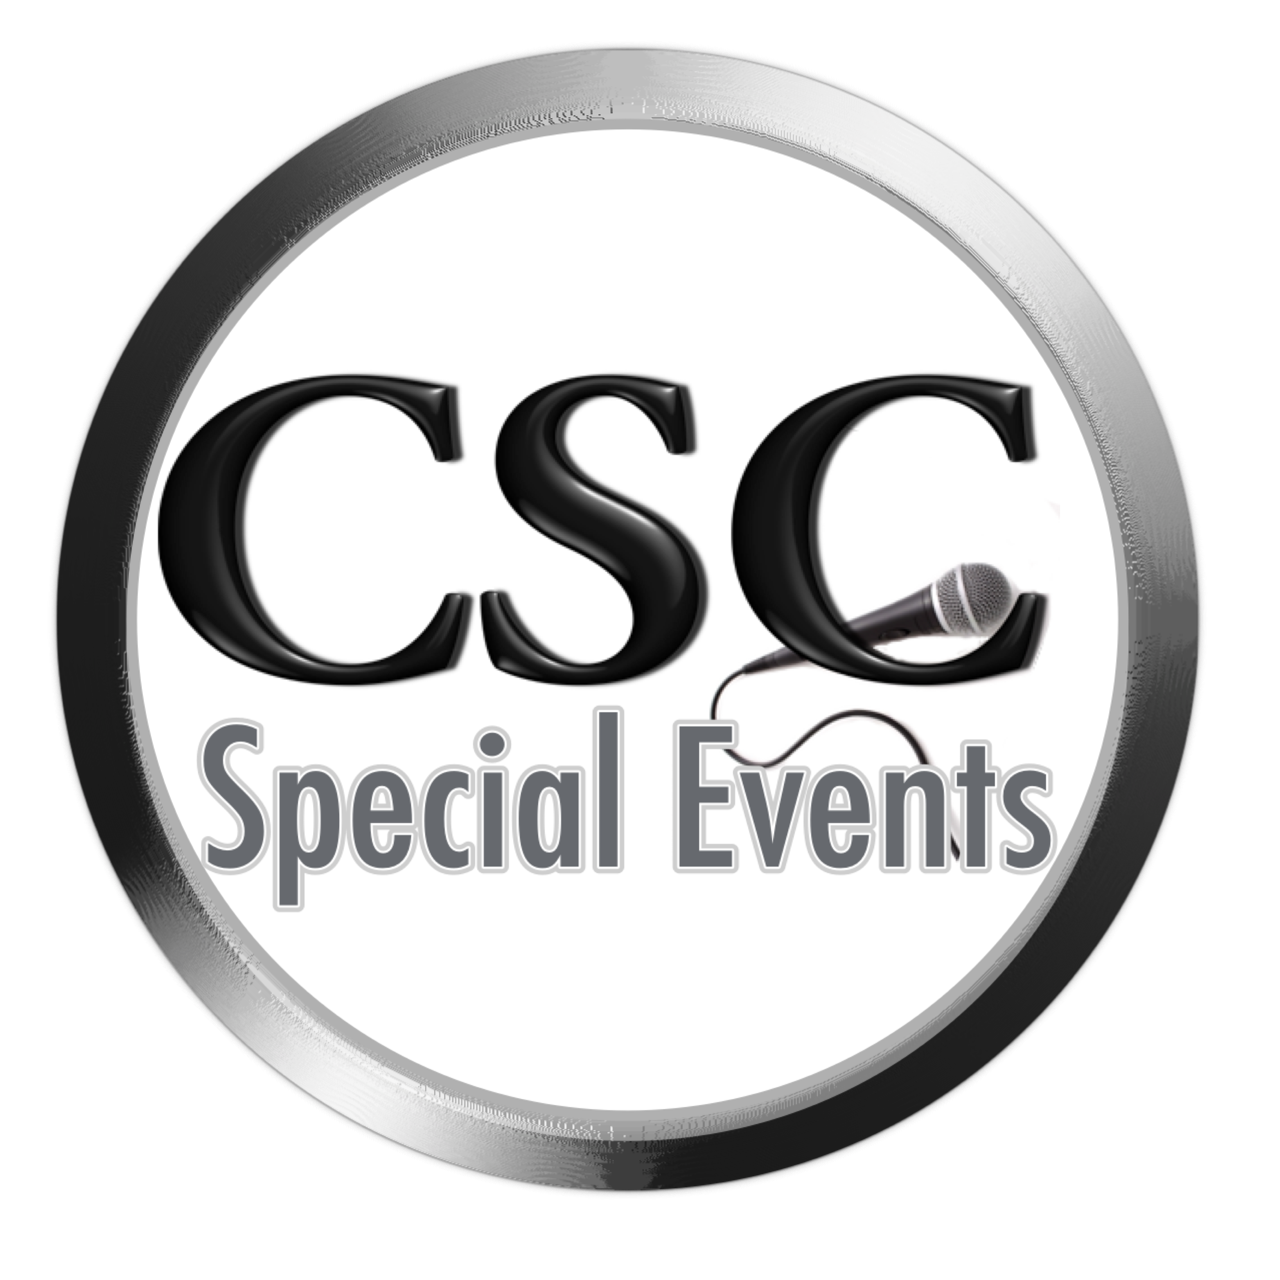 CSC Special Events